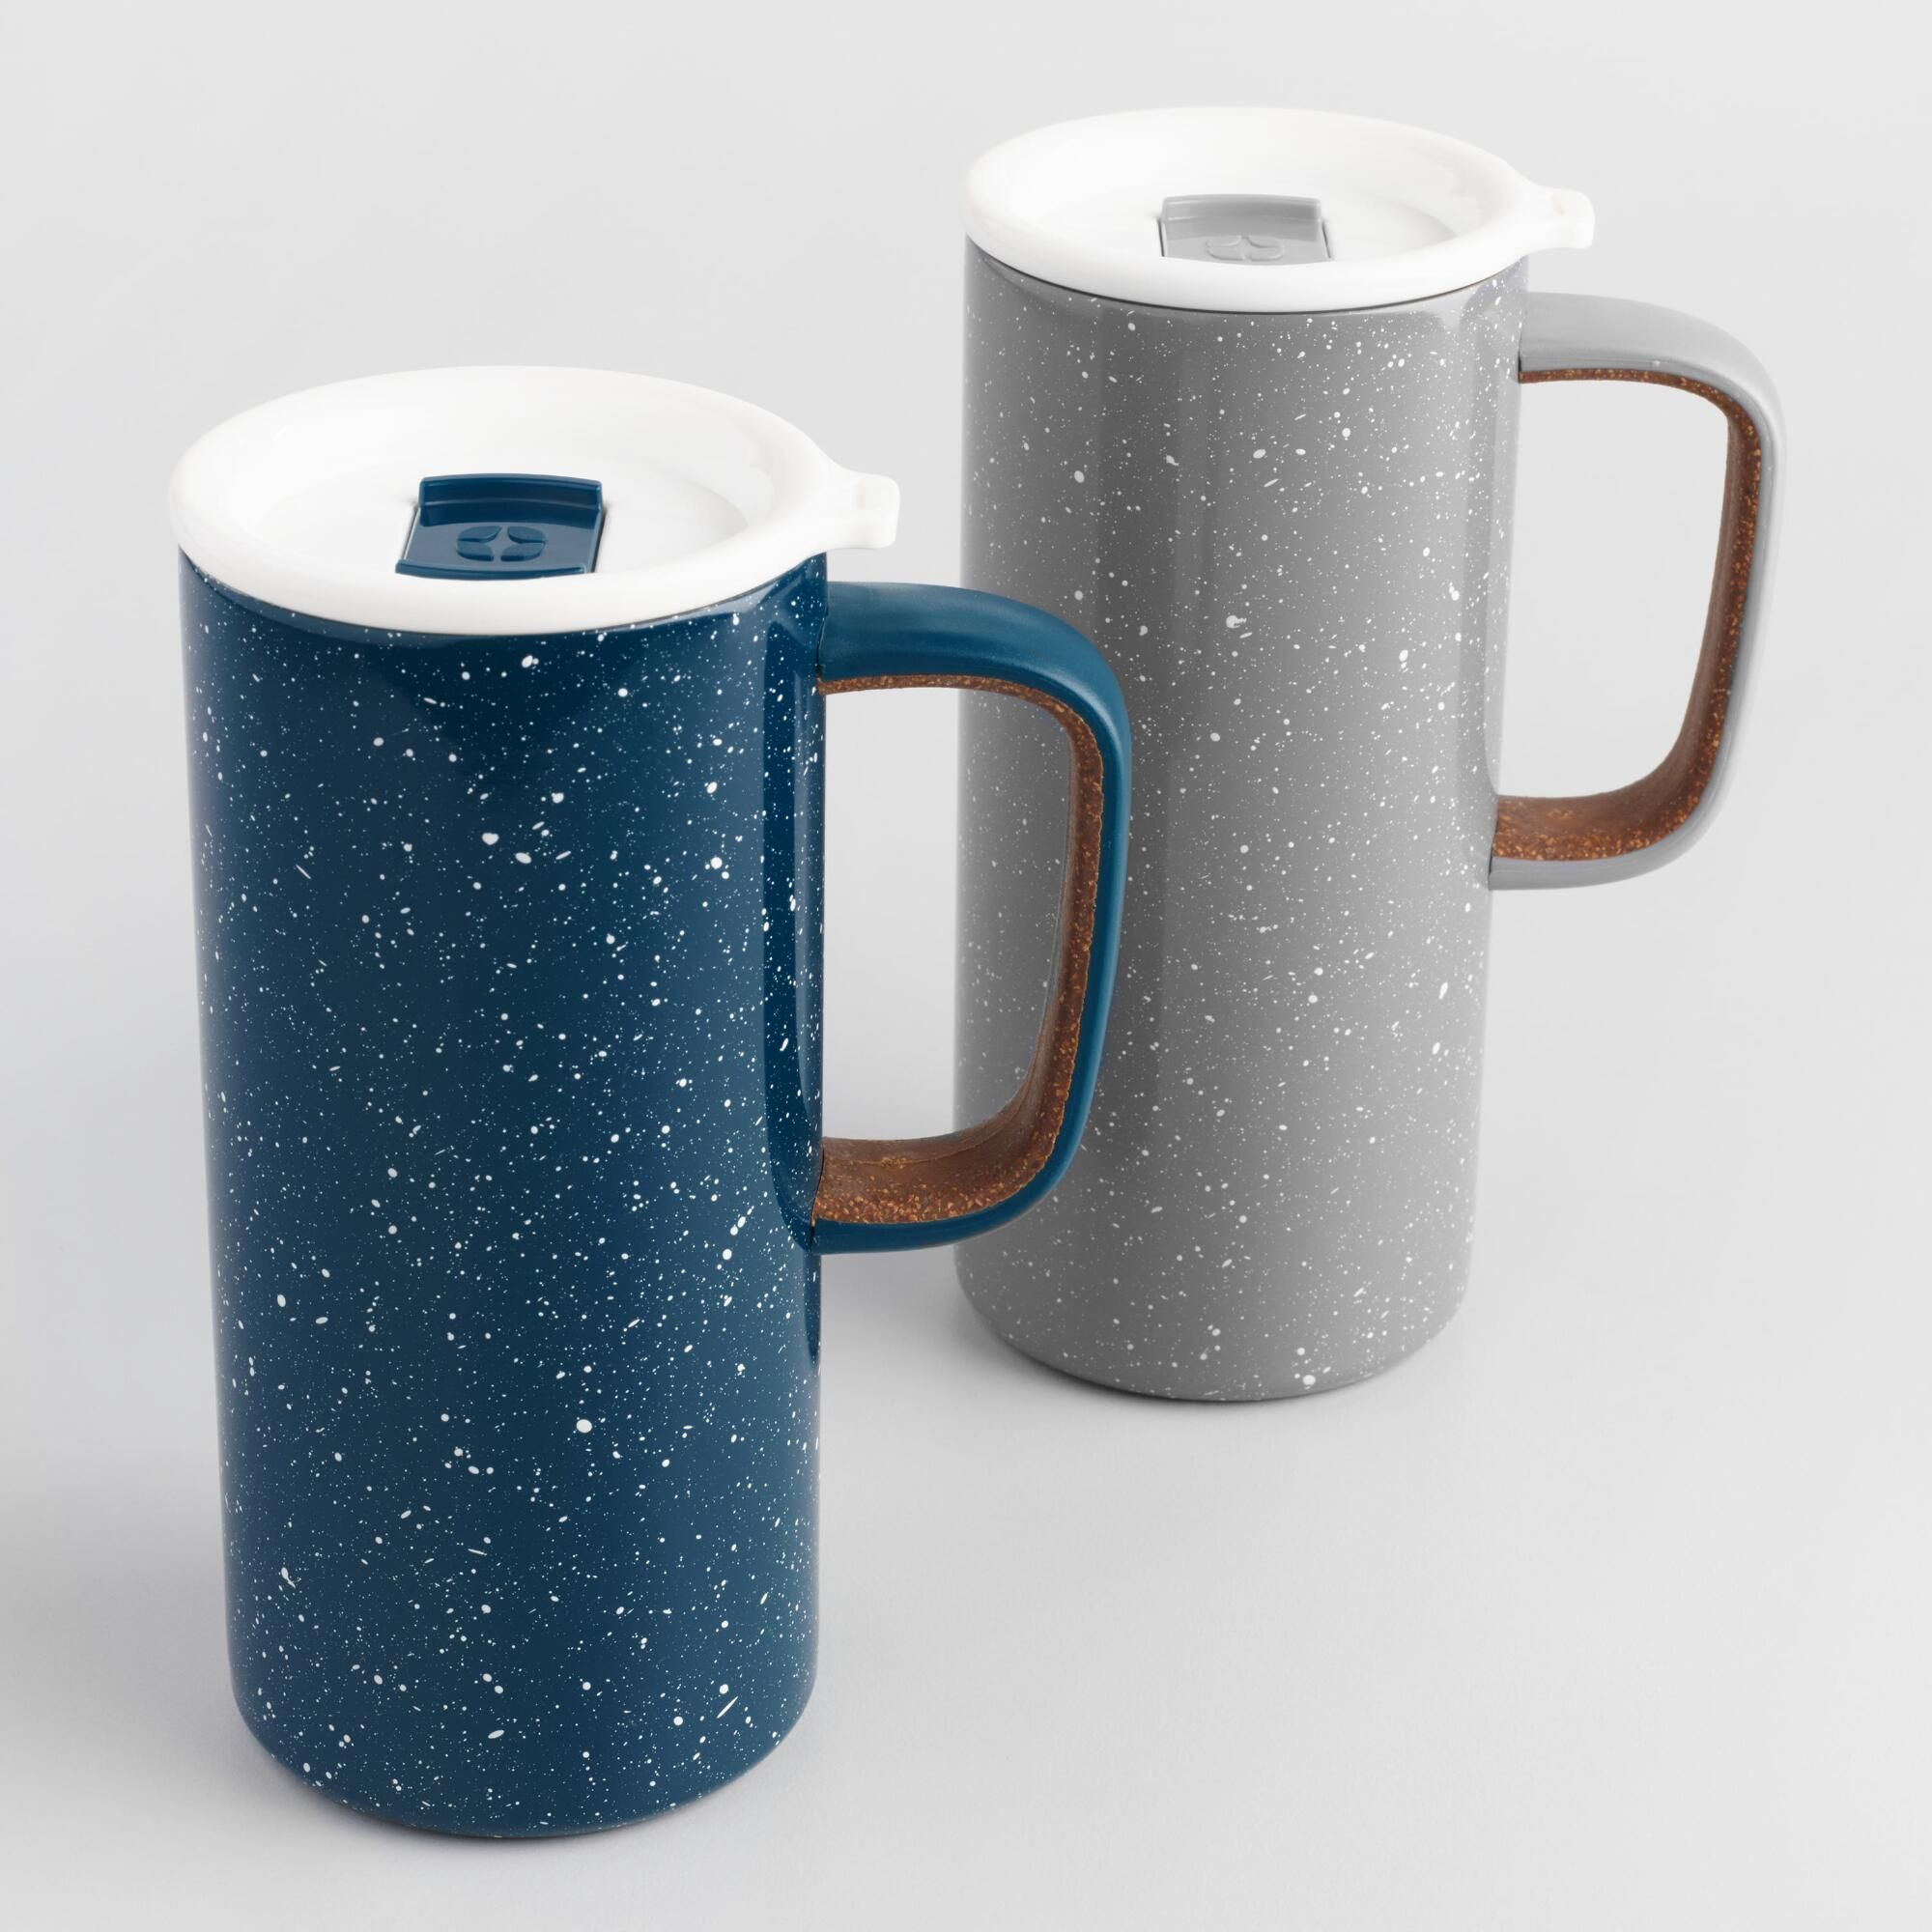 777e5b1a890 Ello Campy Insulated Stainless Steel Travel Mugs Set of 2 by World ...